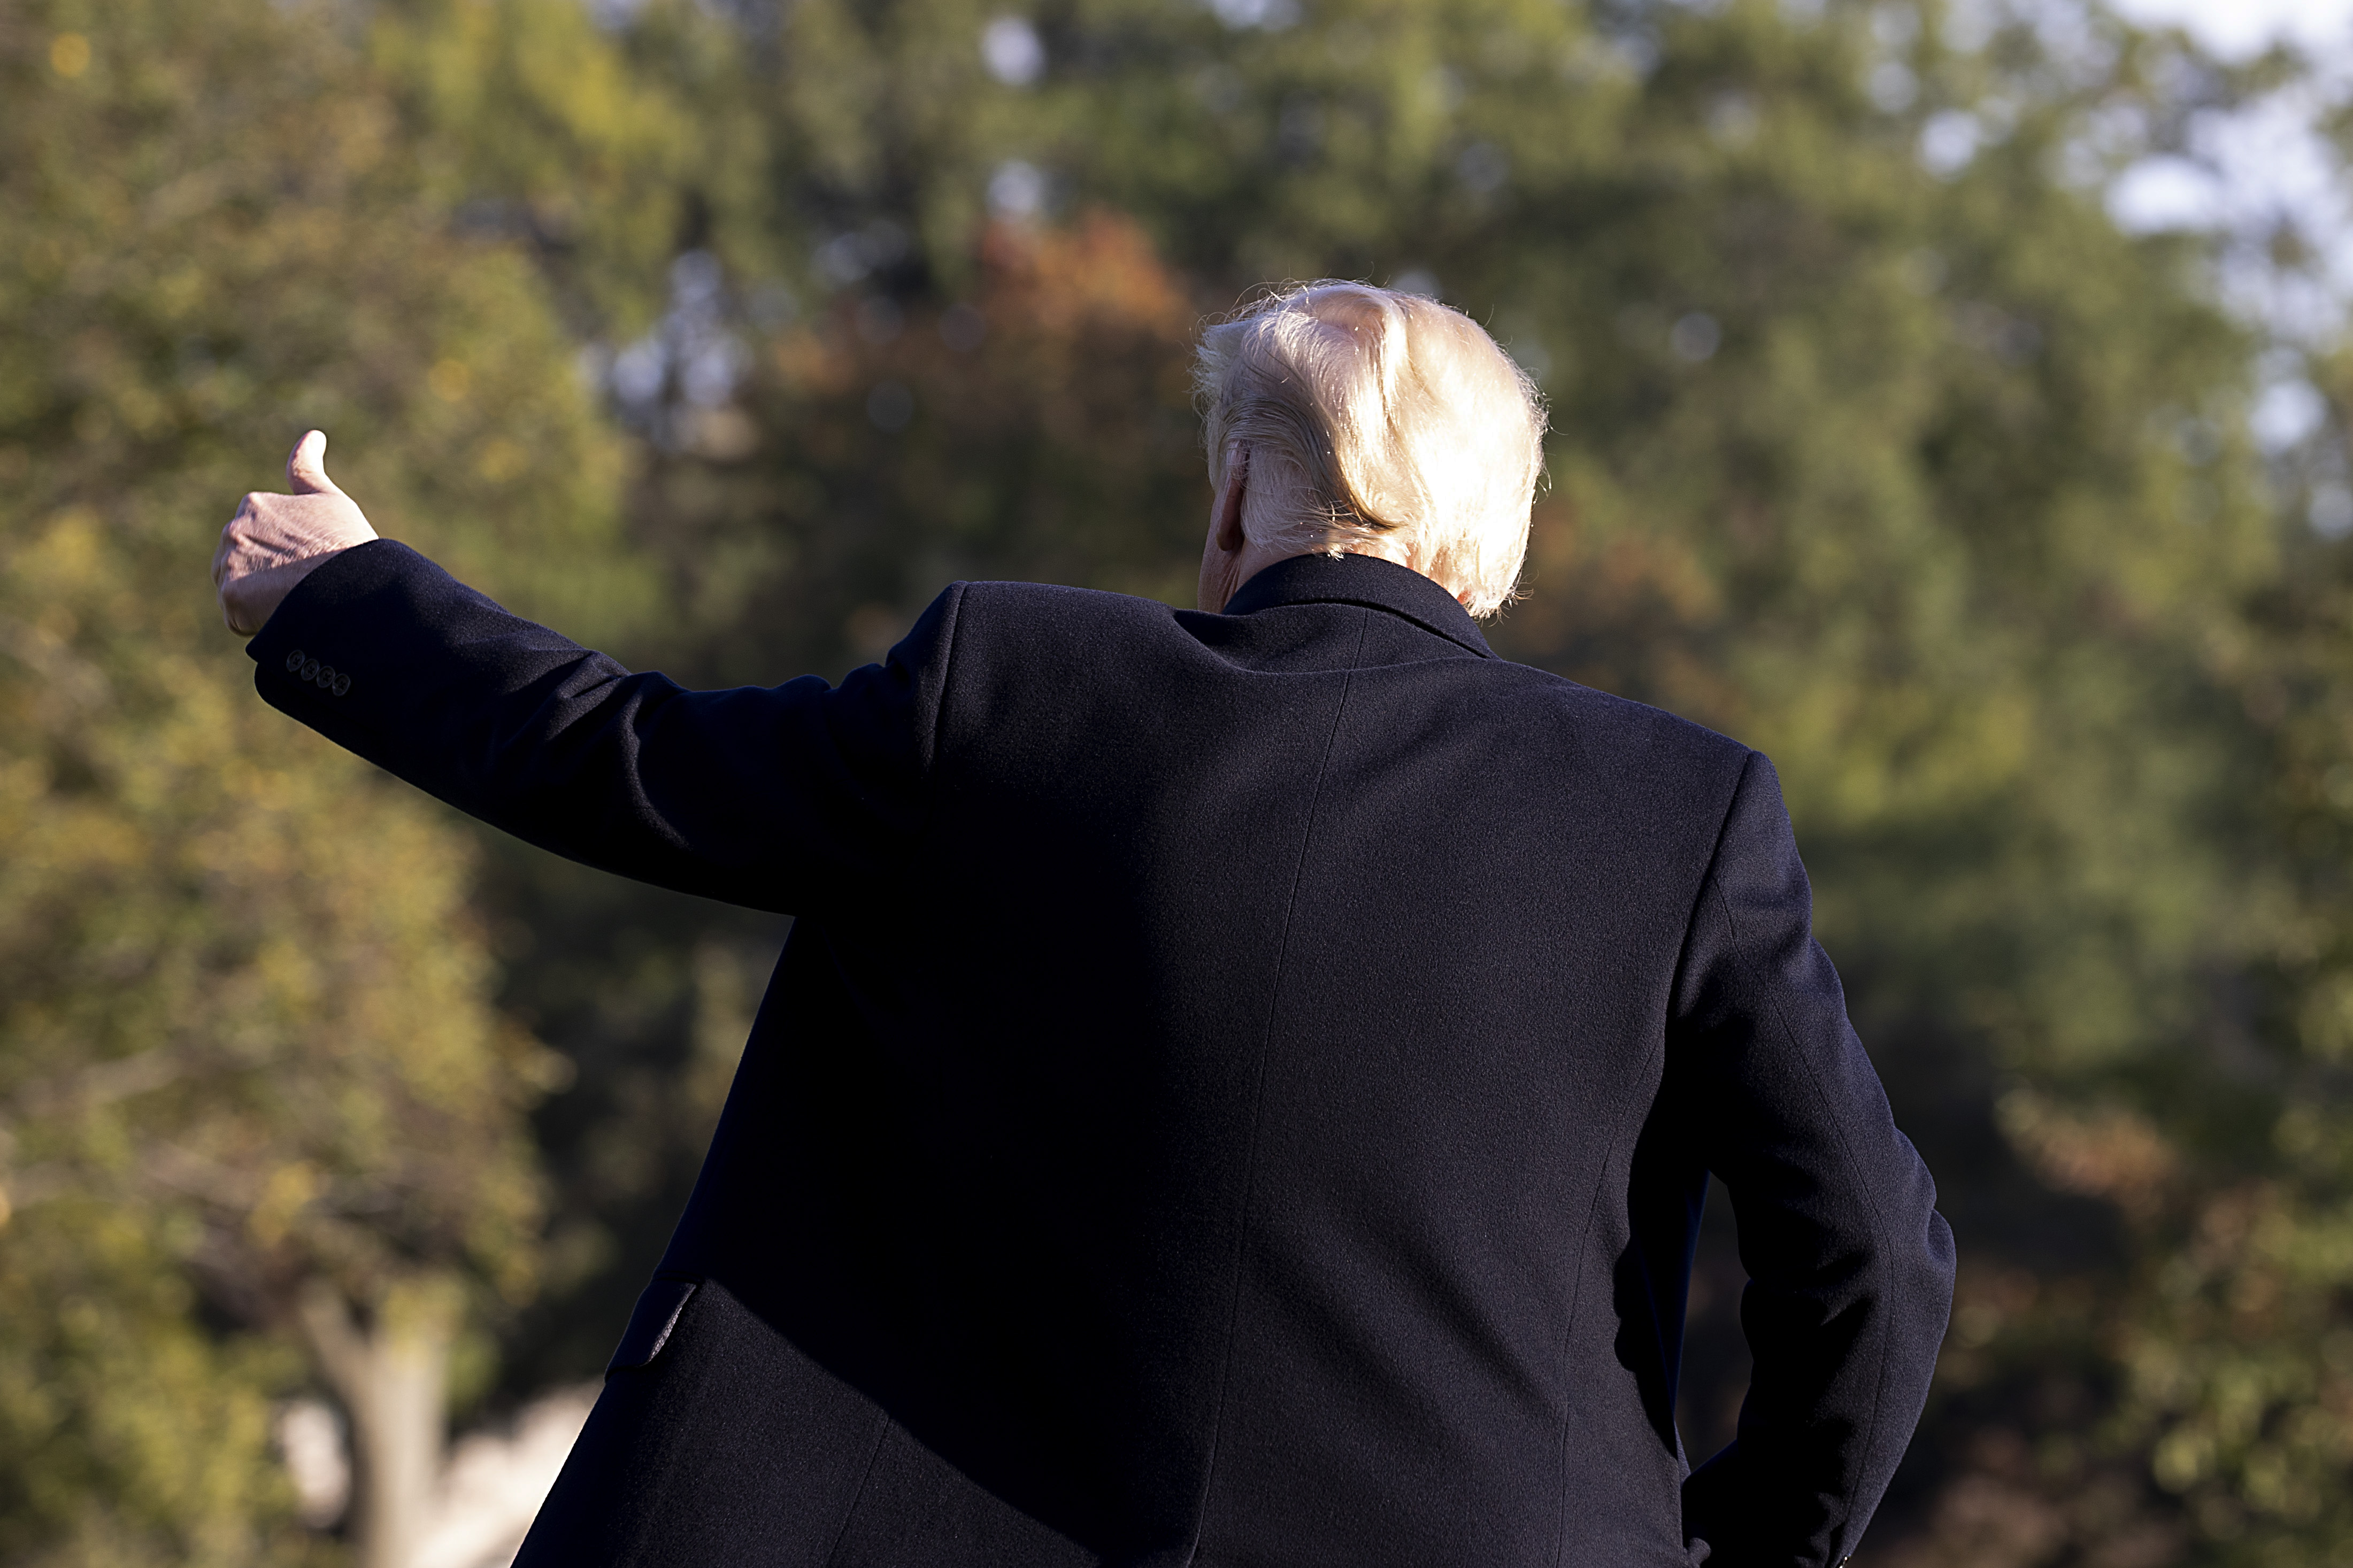 President Donald Trump, seen from the back, gives a thumbs-up gesture.